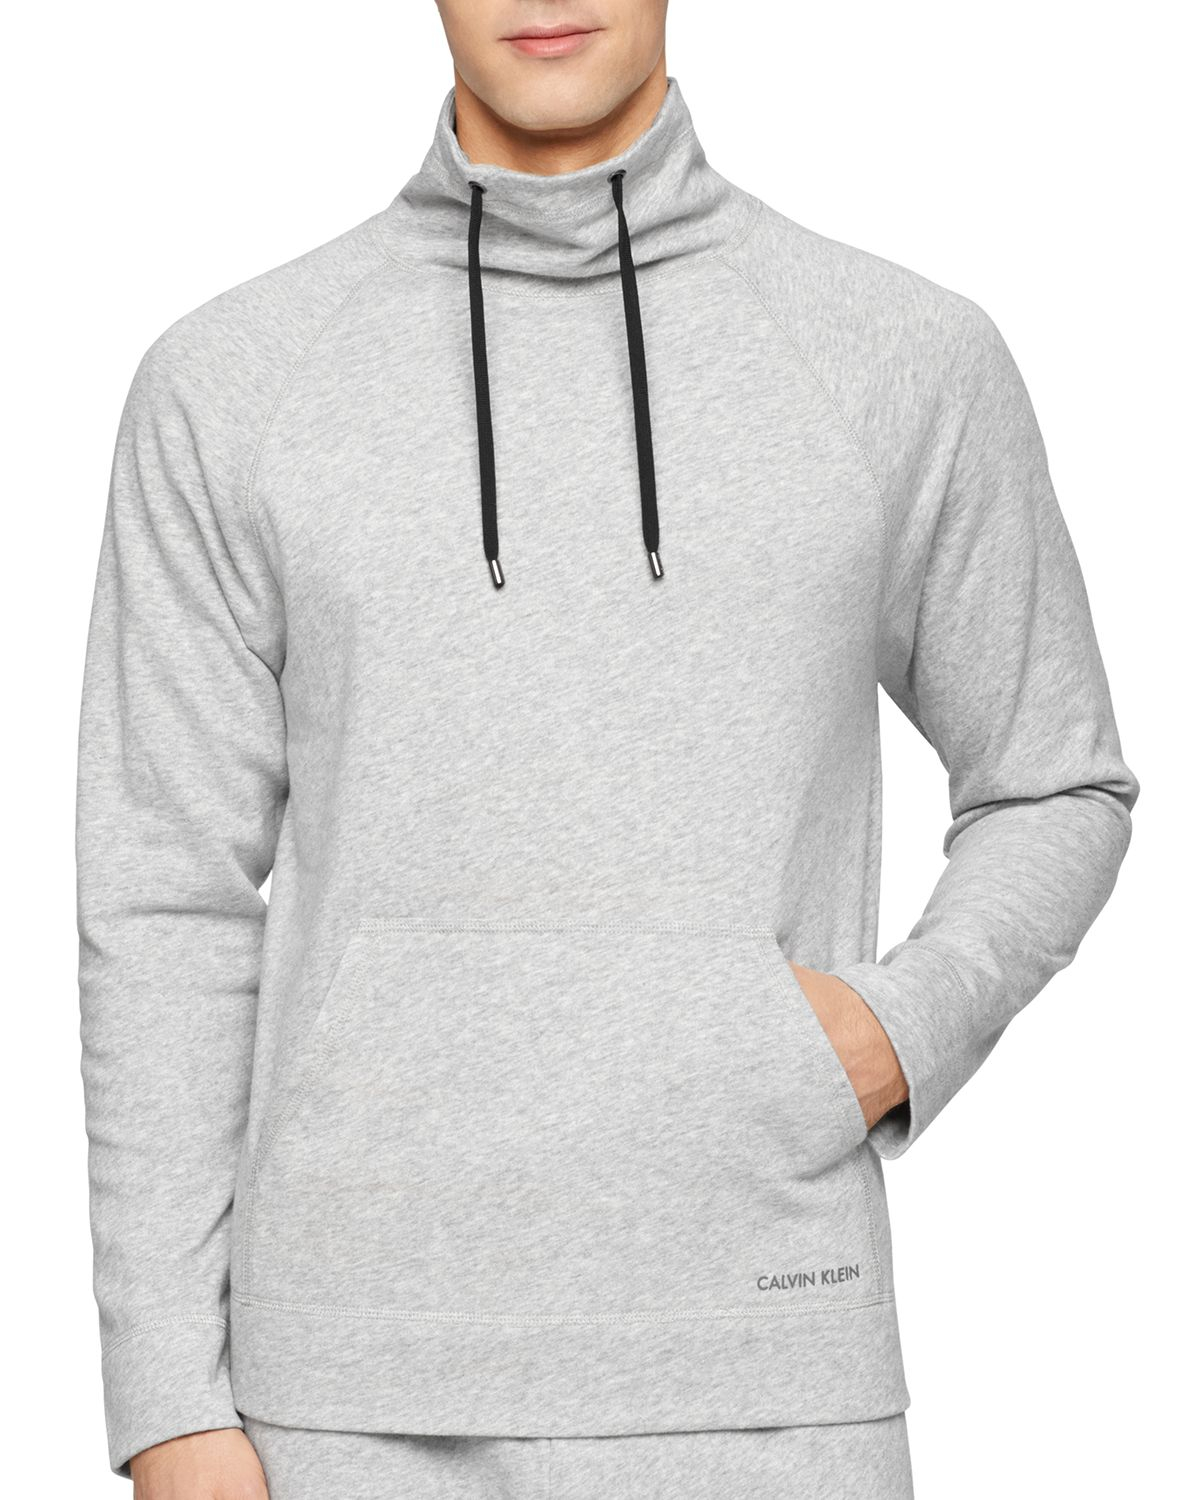 calvin klein pullover top in gray for men lyst. Black Bedroom Furniture Sets. Home Design Ideas